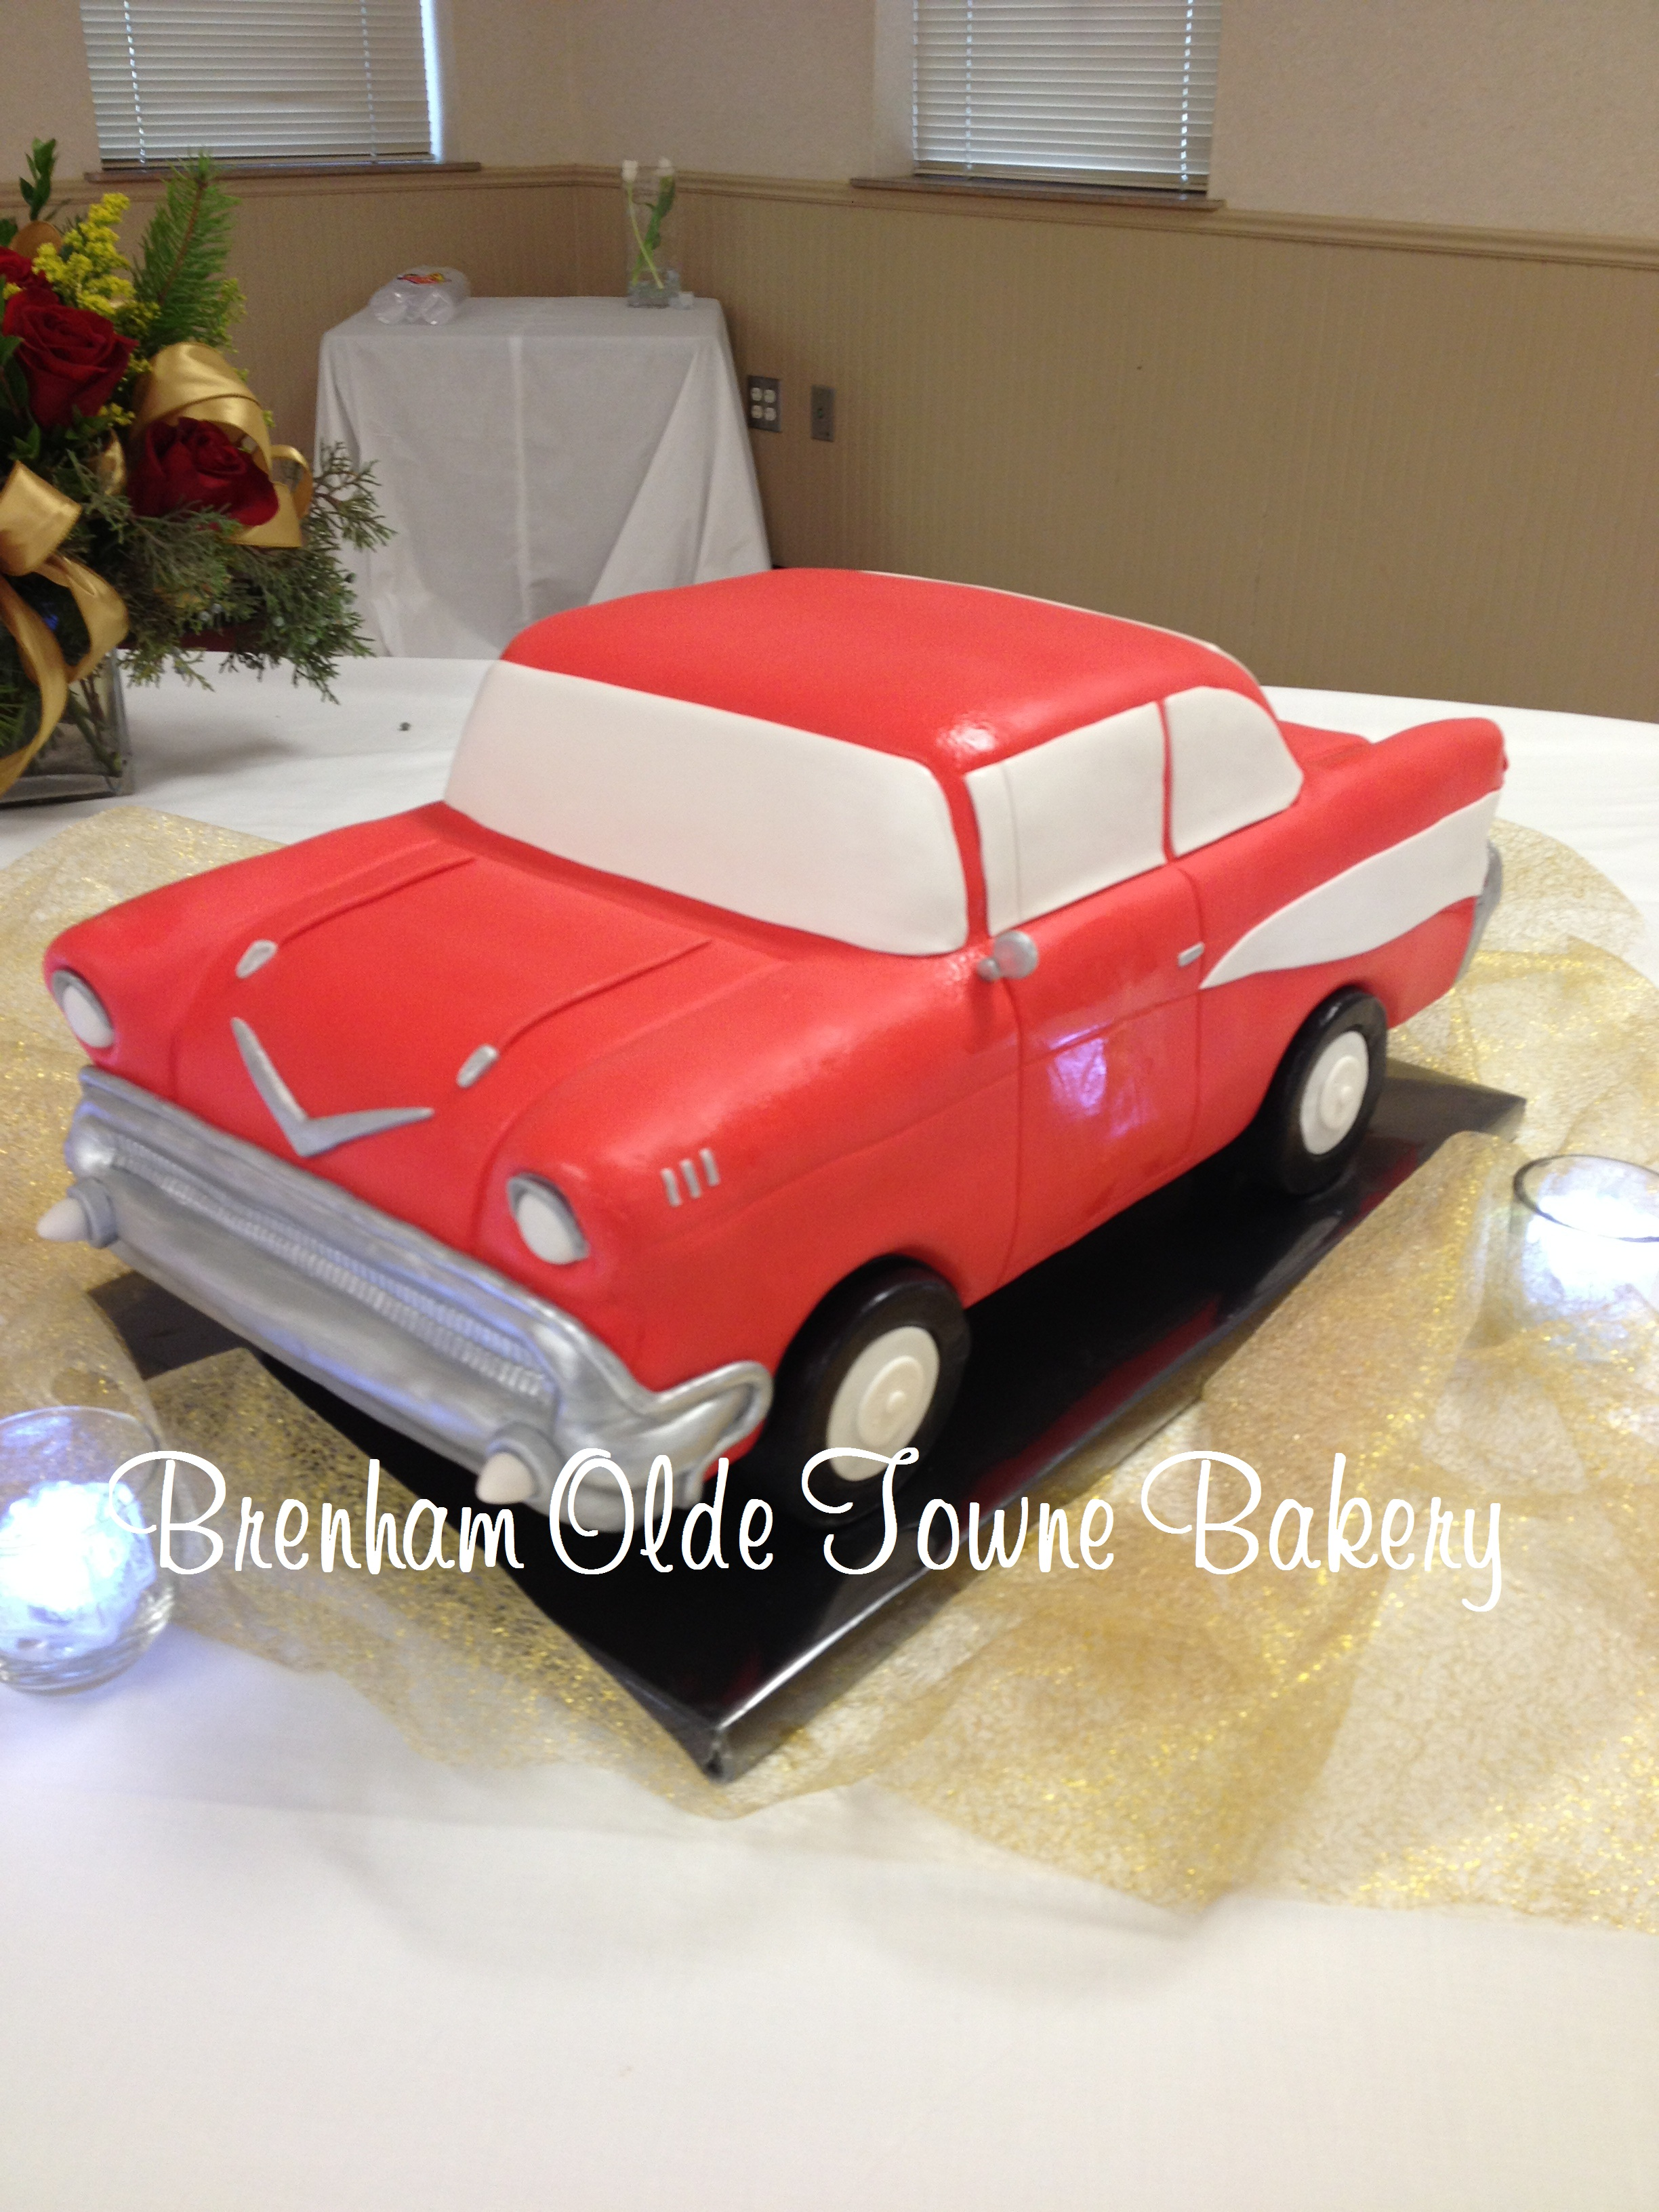 1956 classic chevy bel air car Brenham Olde Towne Bakery